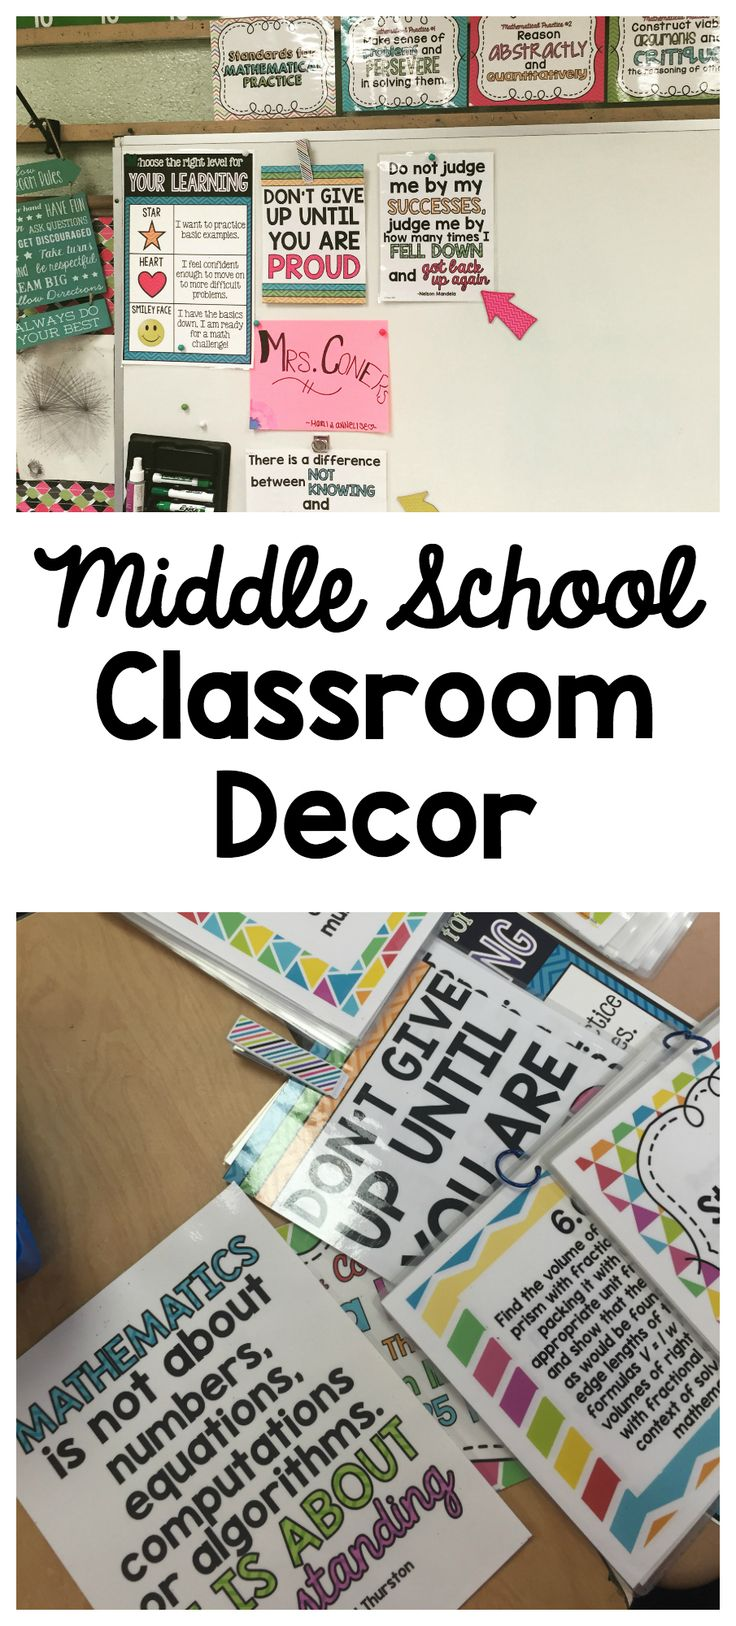 Middle School Classroom Decor                                                                                                                                                      More